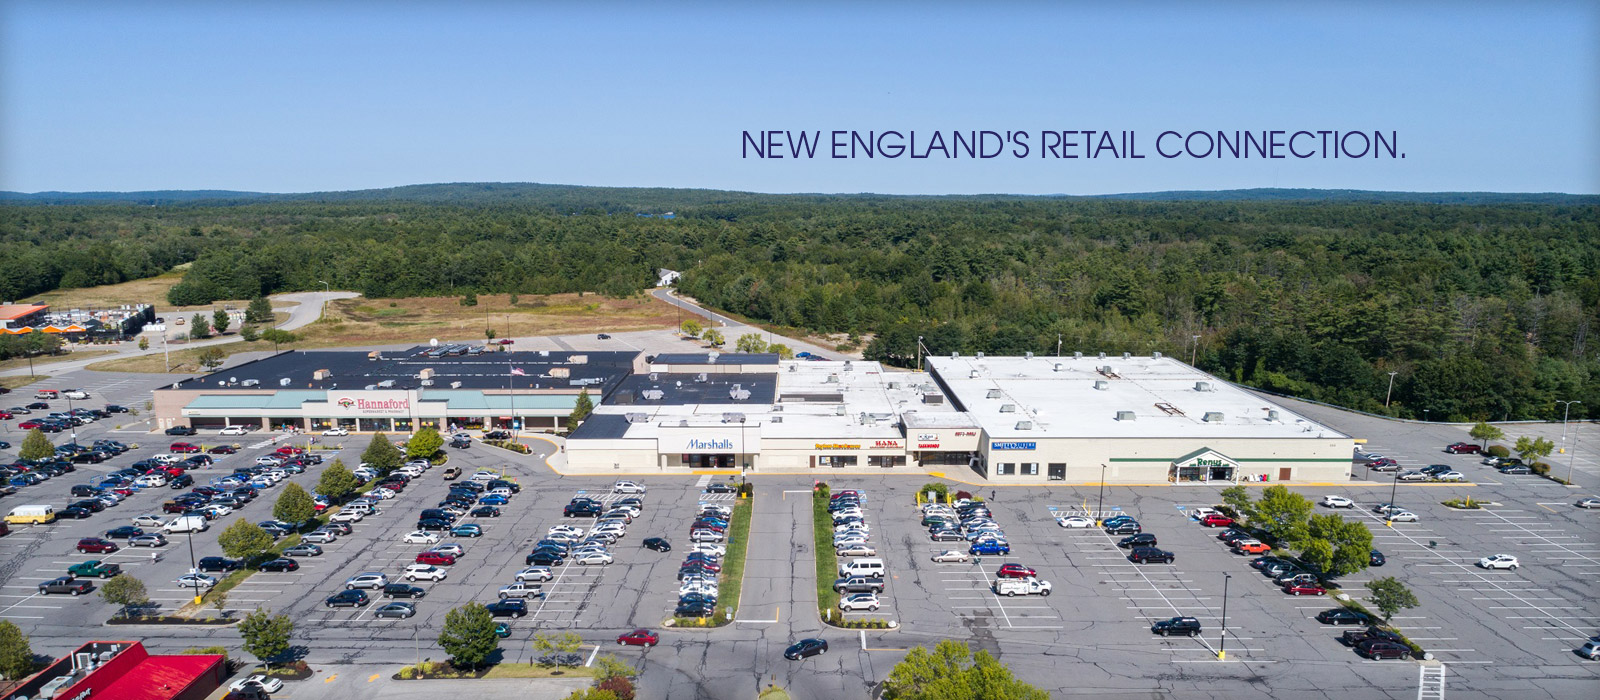 New England's retail connection.